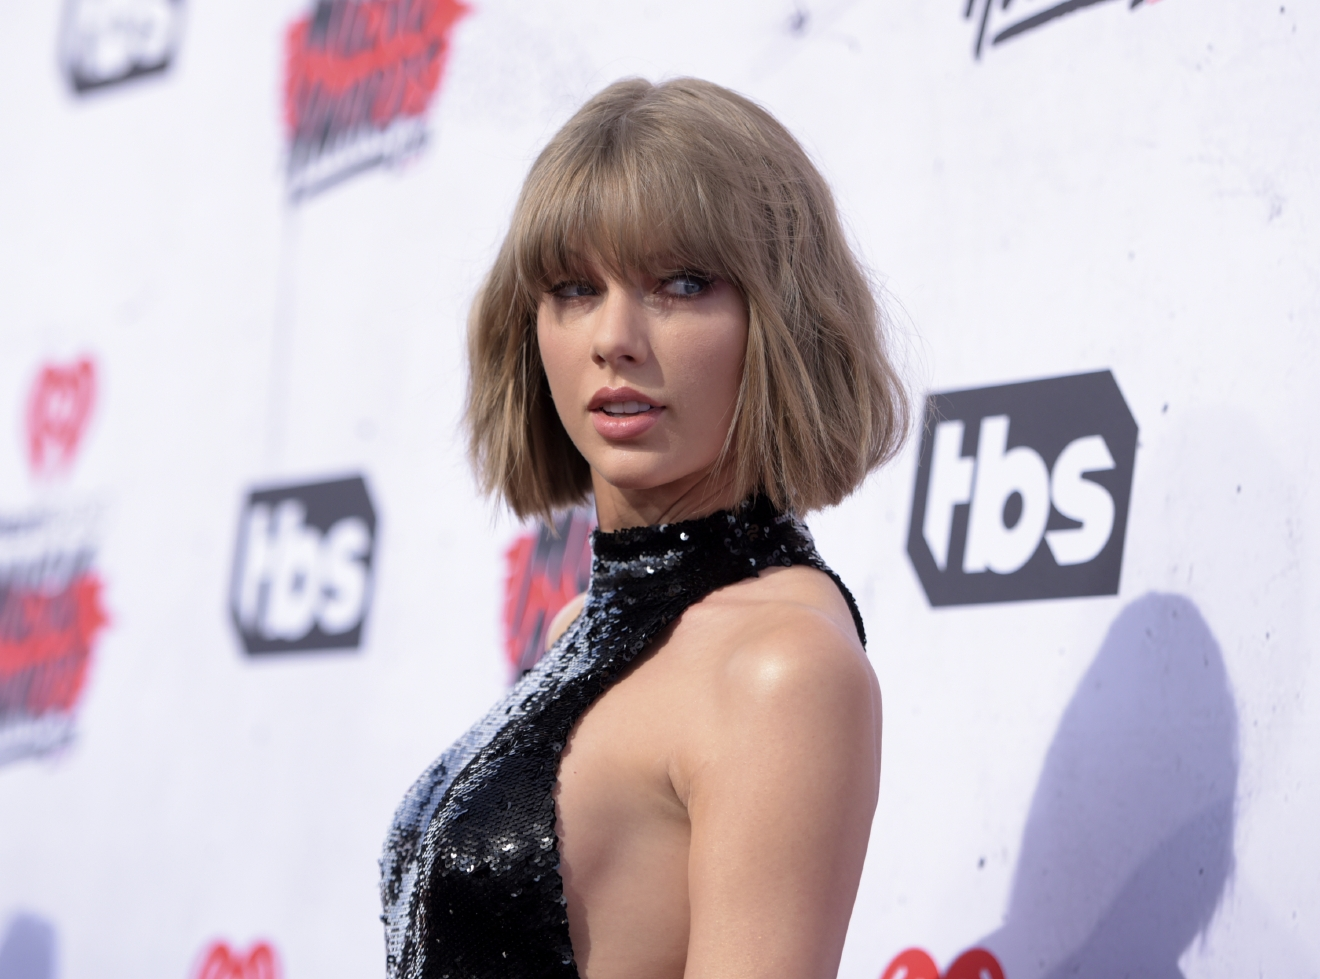 "FILE - In this April 3, 2016 file photo, Taylor Swift arrives at the iHeartRadio Music Awards at The Forum in Inglewood, Calif. Swift has teamed with former One Direction singer Zayn Malik for the surprise duet, ""I Don't Wanna Live Forever"" released on Friday, Dec. 9, 2016. (Photo by Richard Shotwell/Invision/AP, File)"